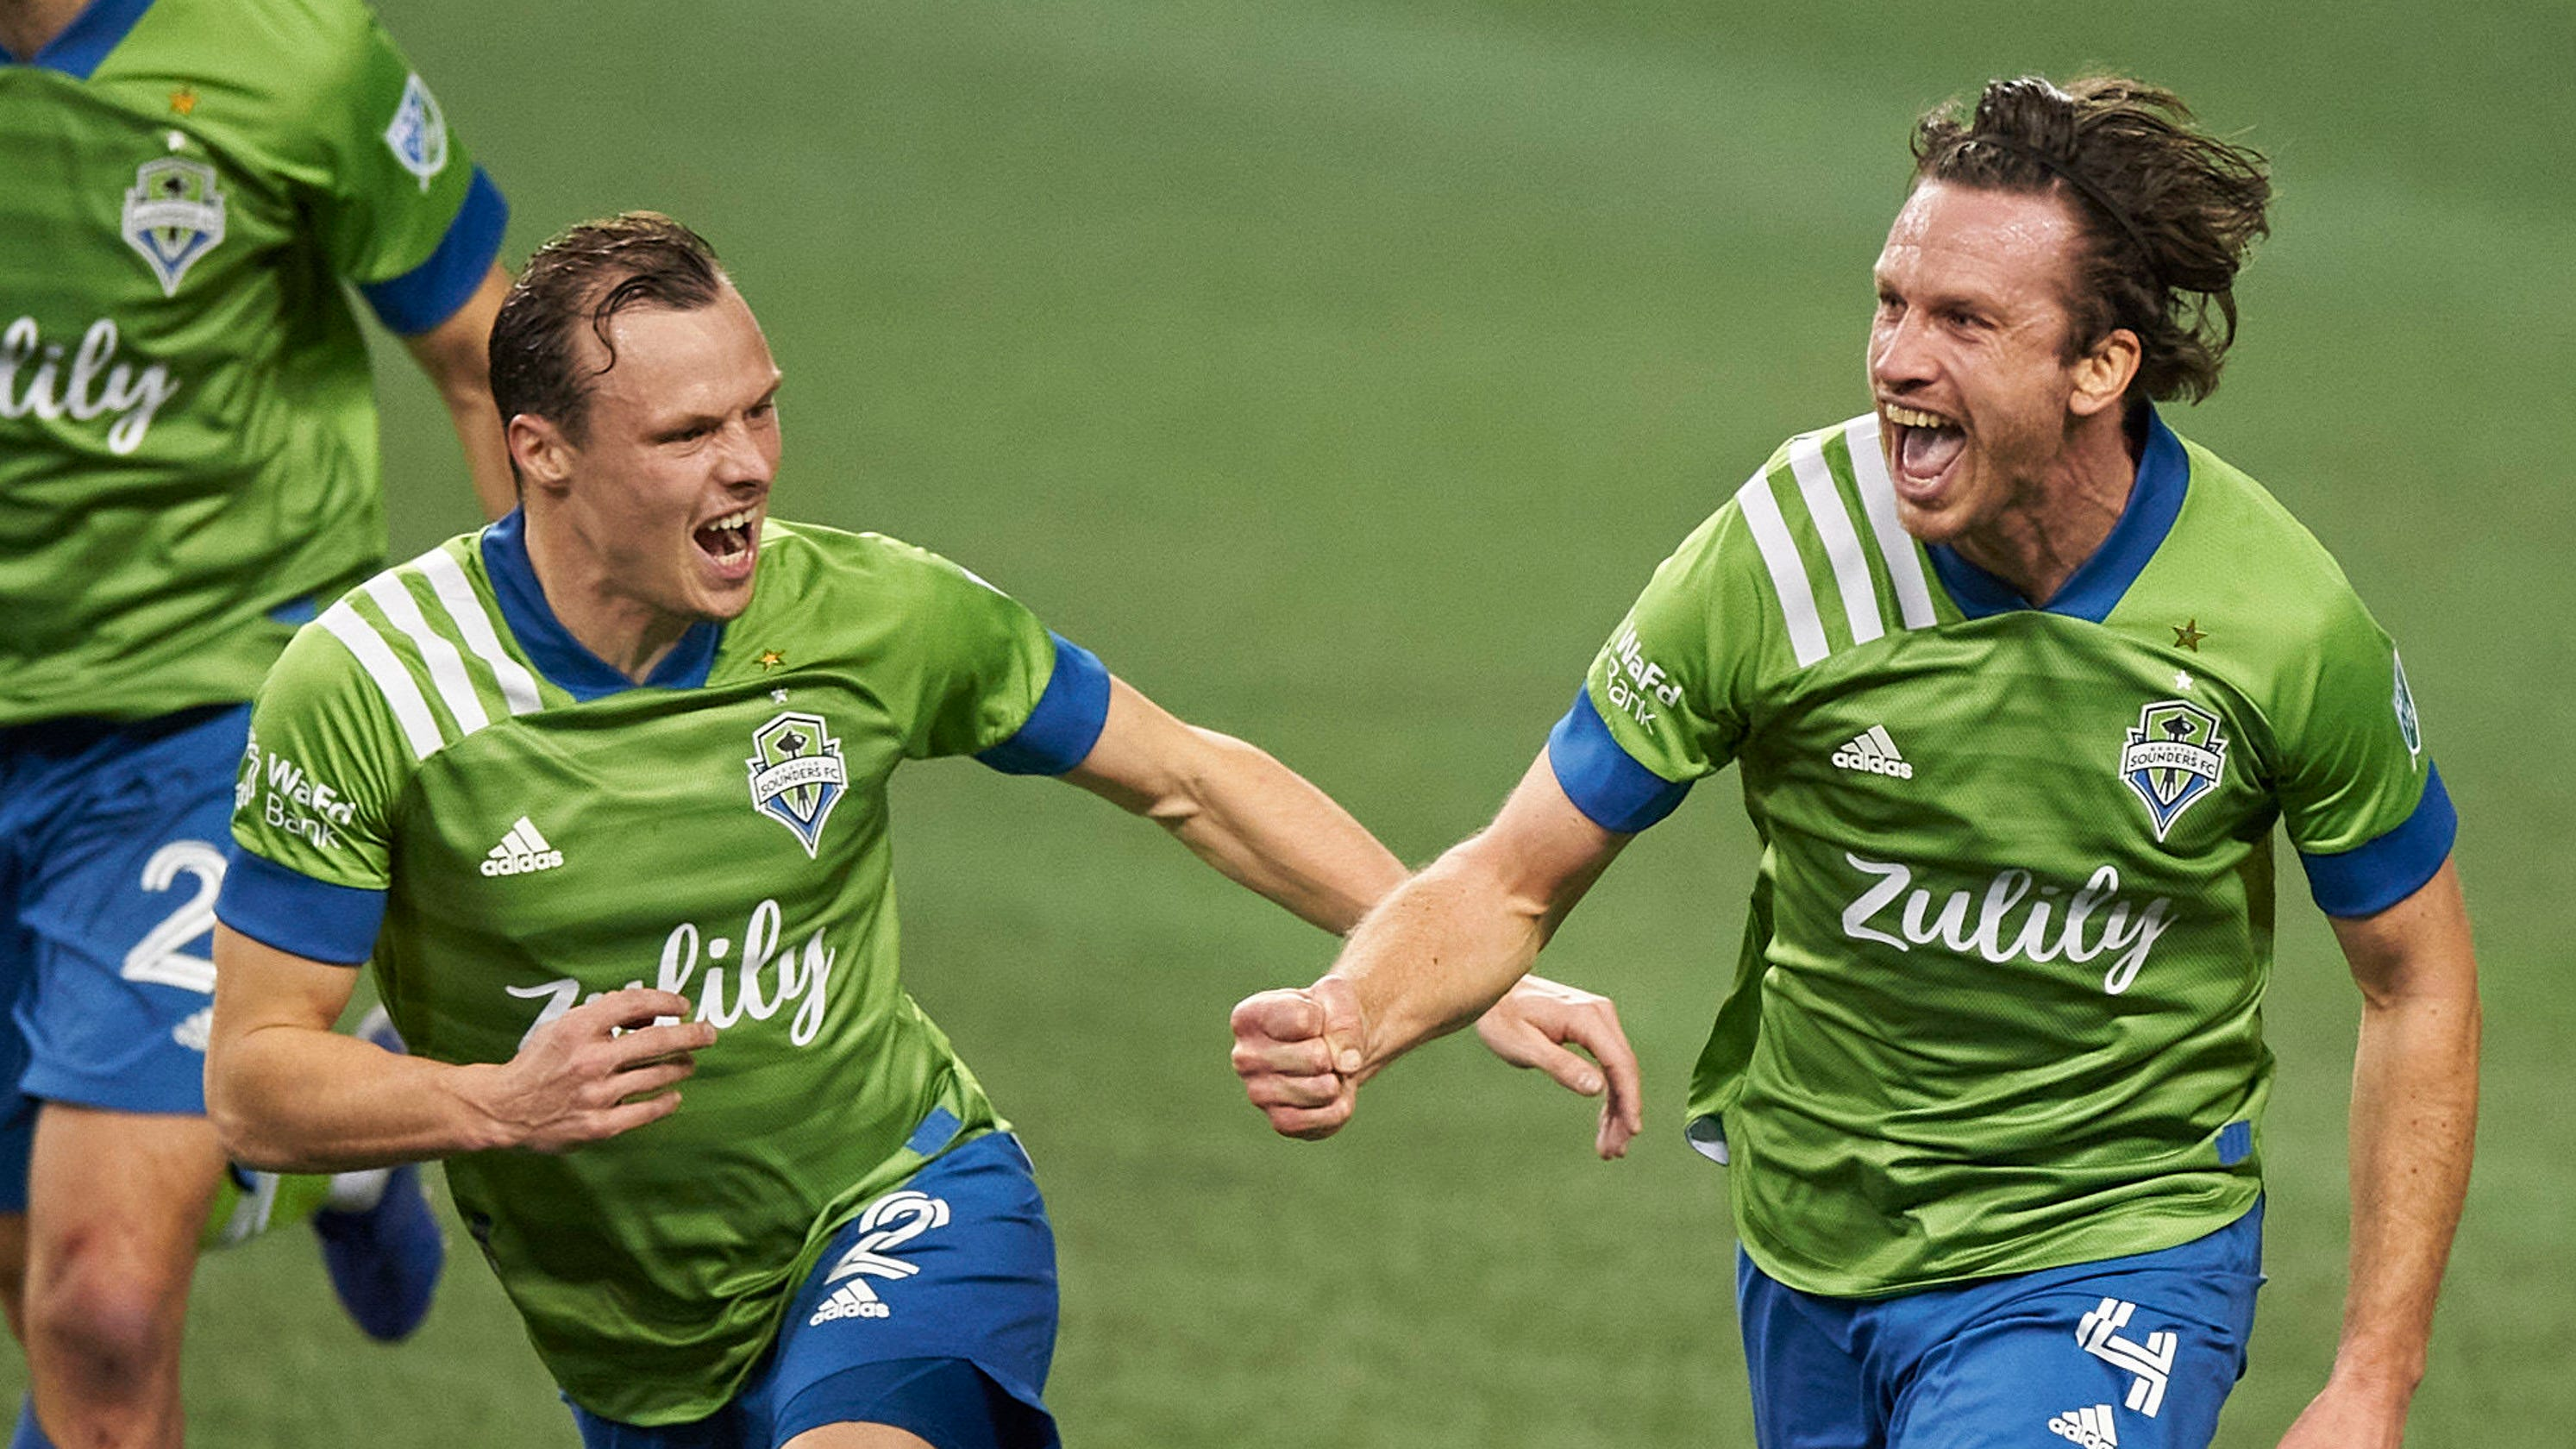 Seattle Sounders pull off dramatic rally to reach 2020 MLS Cup, will play Columbus Crew on Saturday